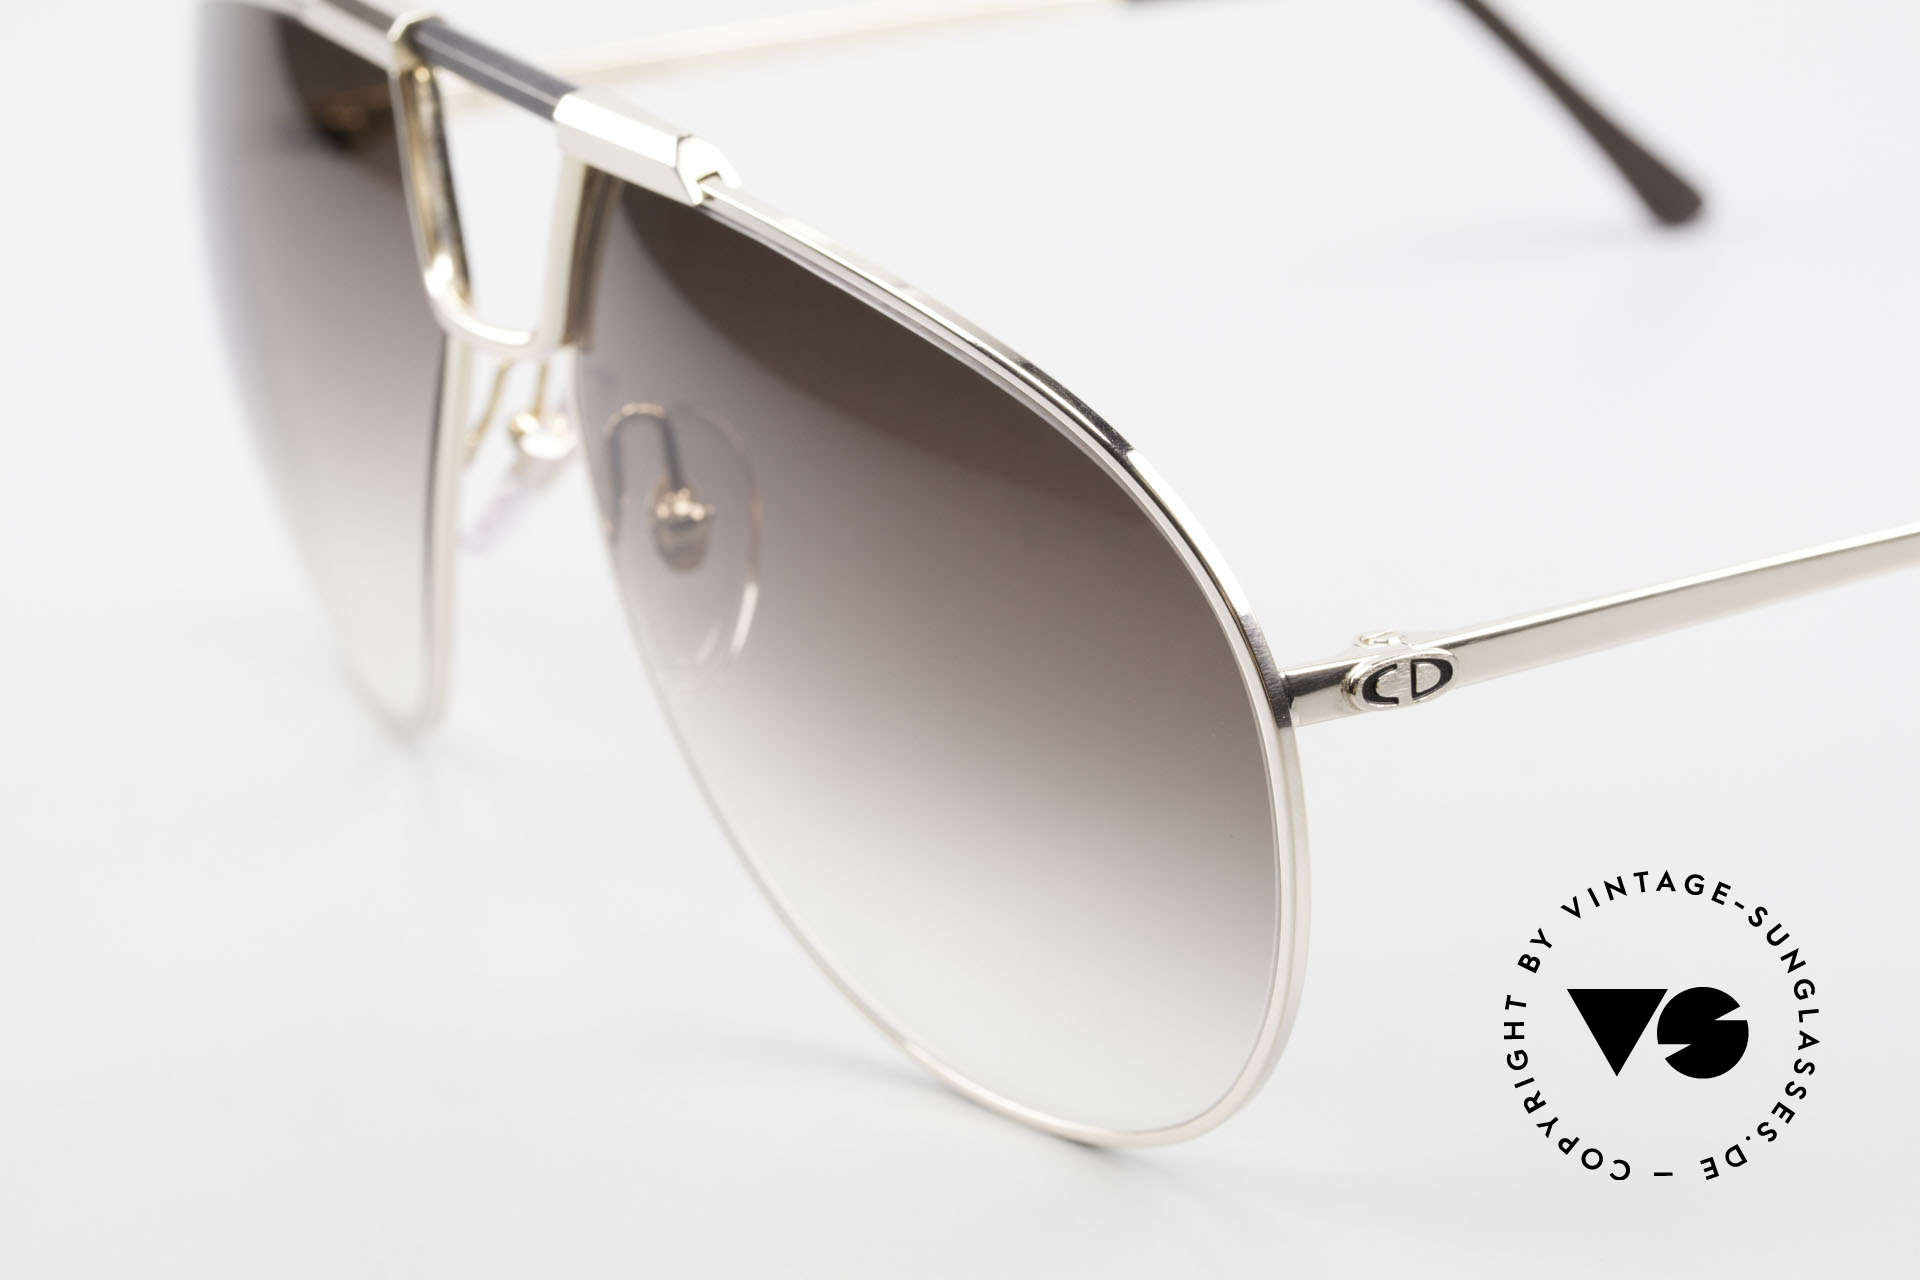 Christian Dior 2151 Monsieur Sunglasses Large, LARGE size (138mm width) & with original case, Made for Men